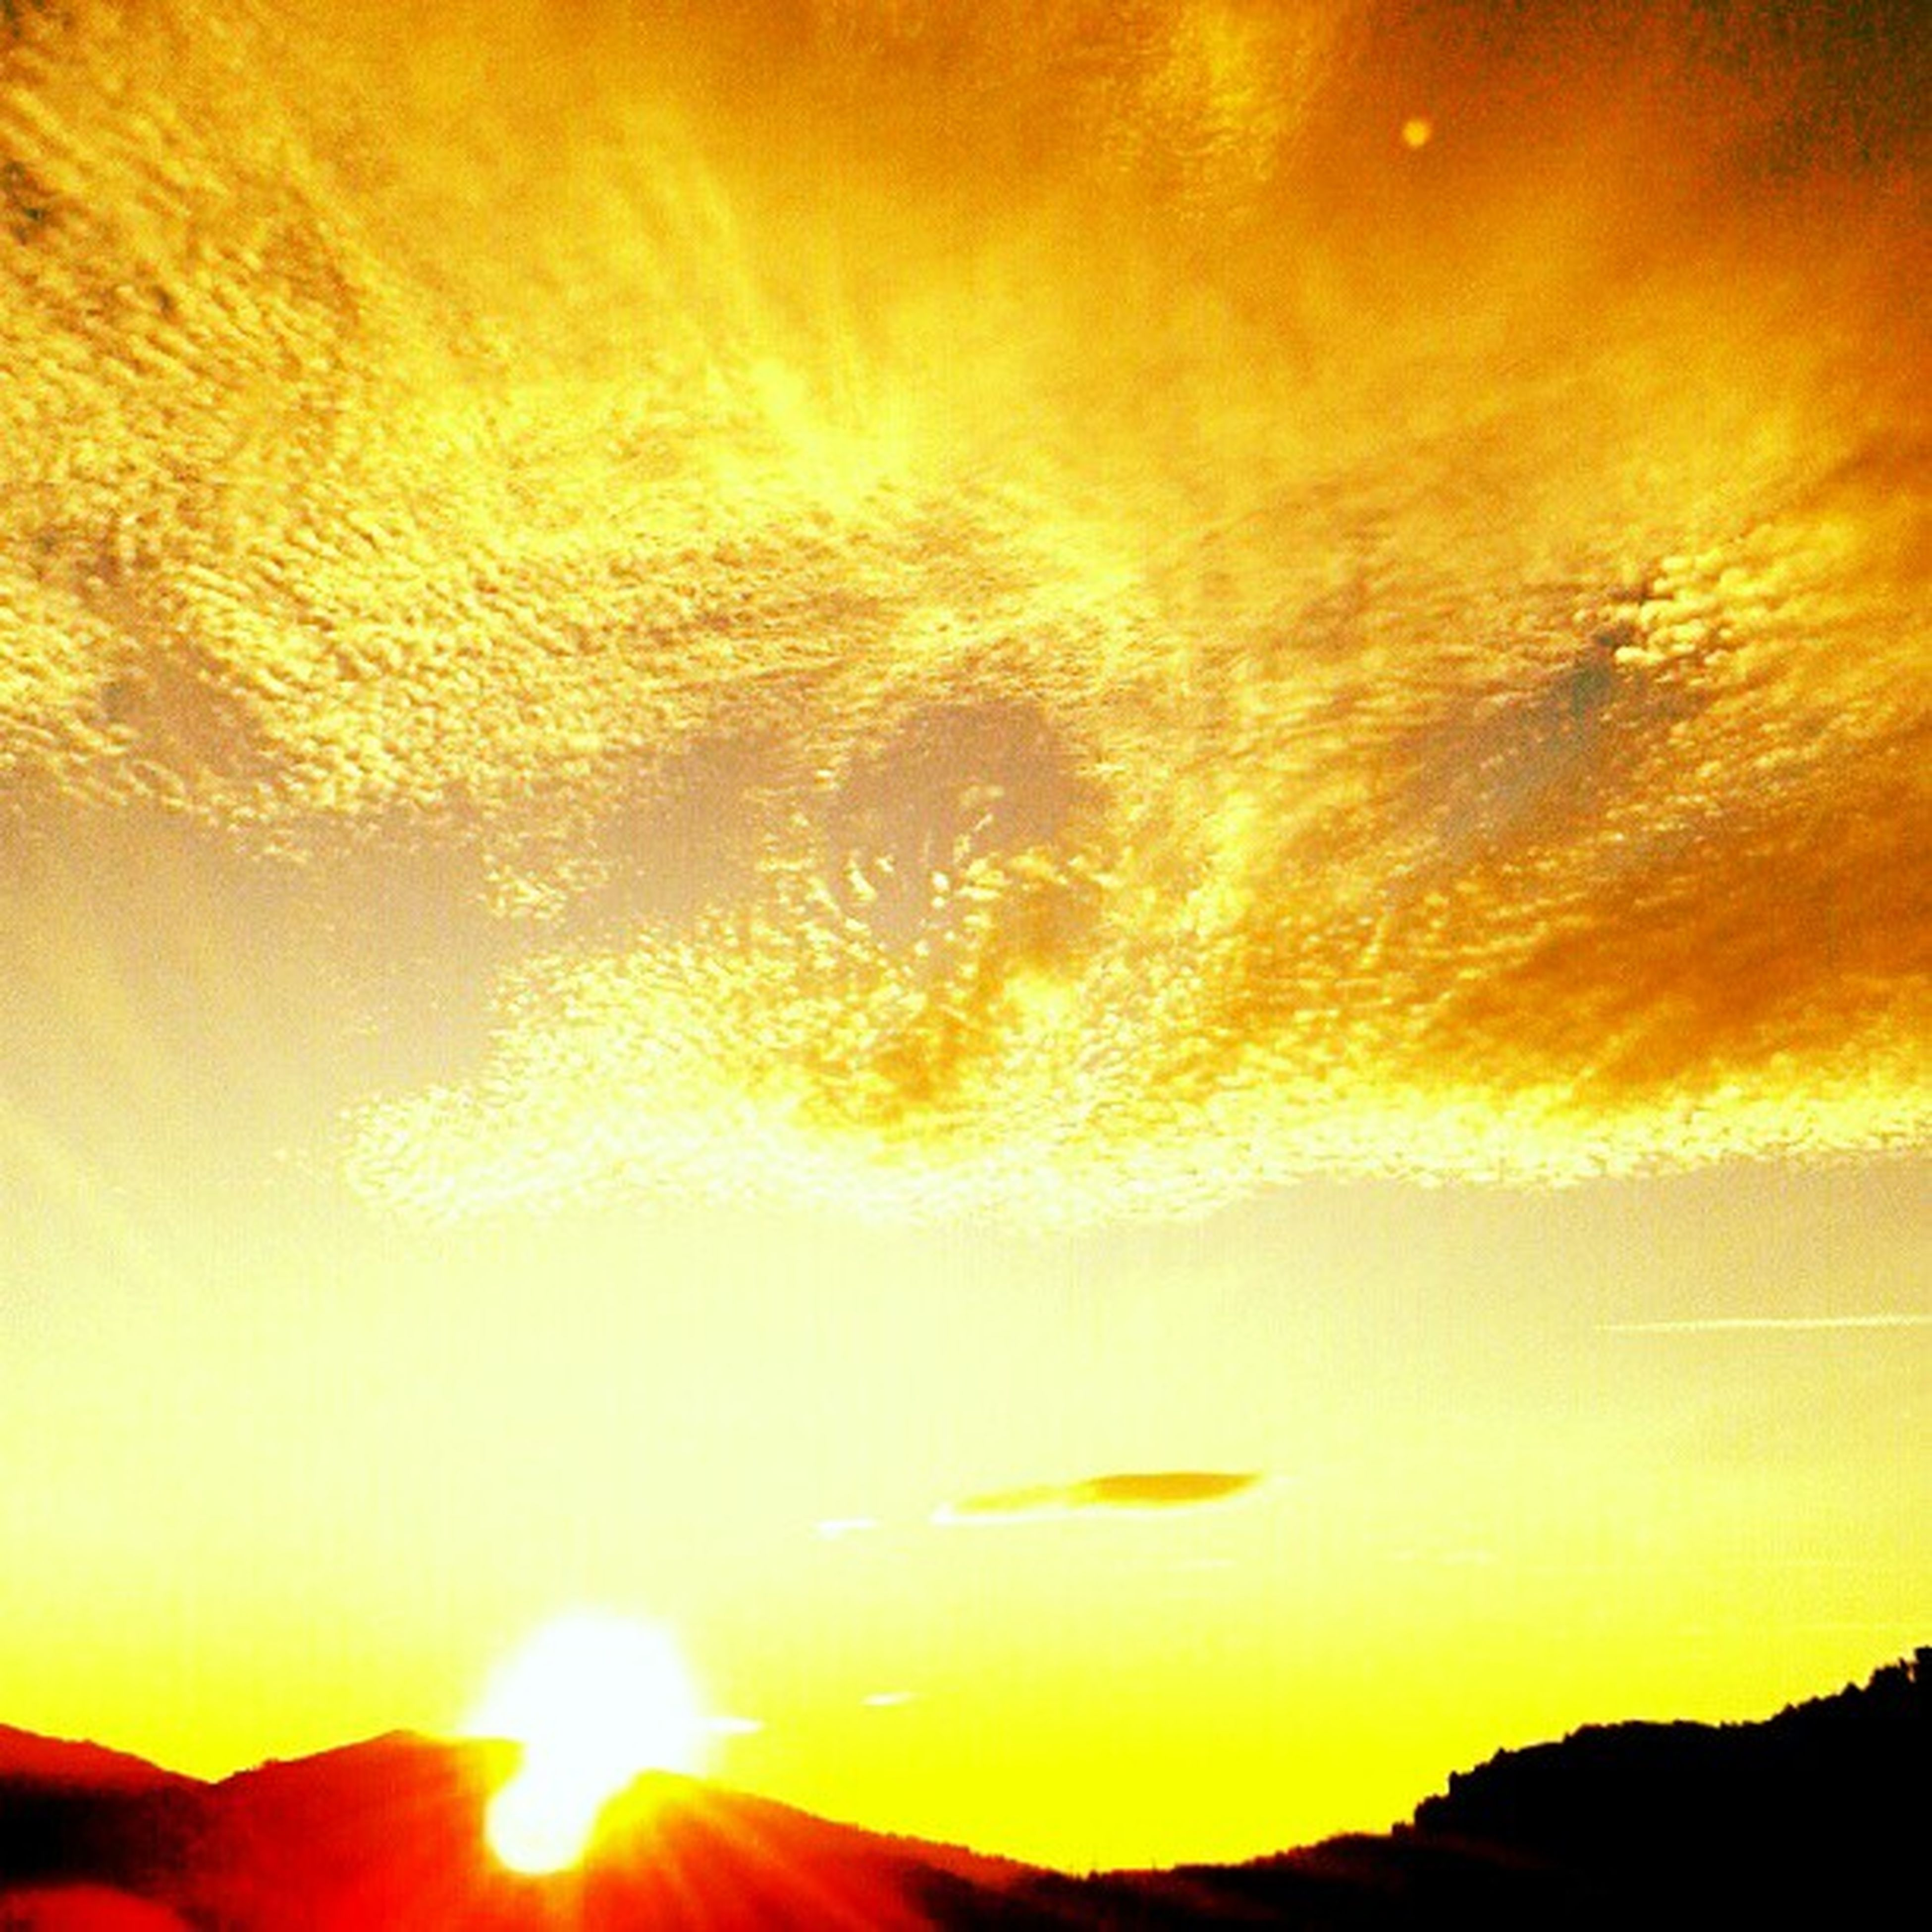 sunset, sun, orange color, scenics, beauty in nature, tranquil scene, tranquility, silhouette, sunlight, idyllic, nature, sky, sunbeam, lens flare, mountain, majestic, low angle view, outdoors, back lit, non-urban scene